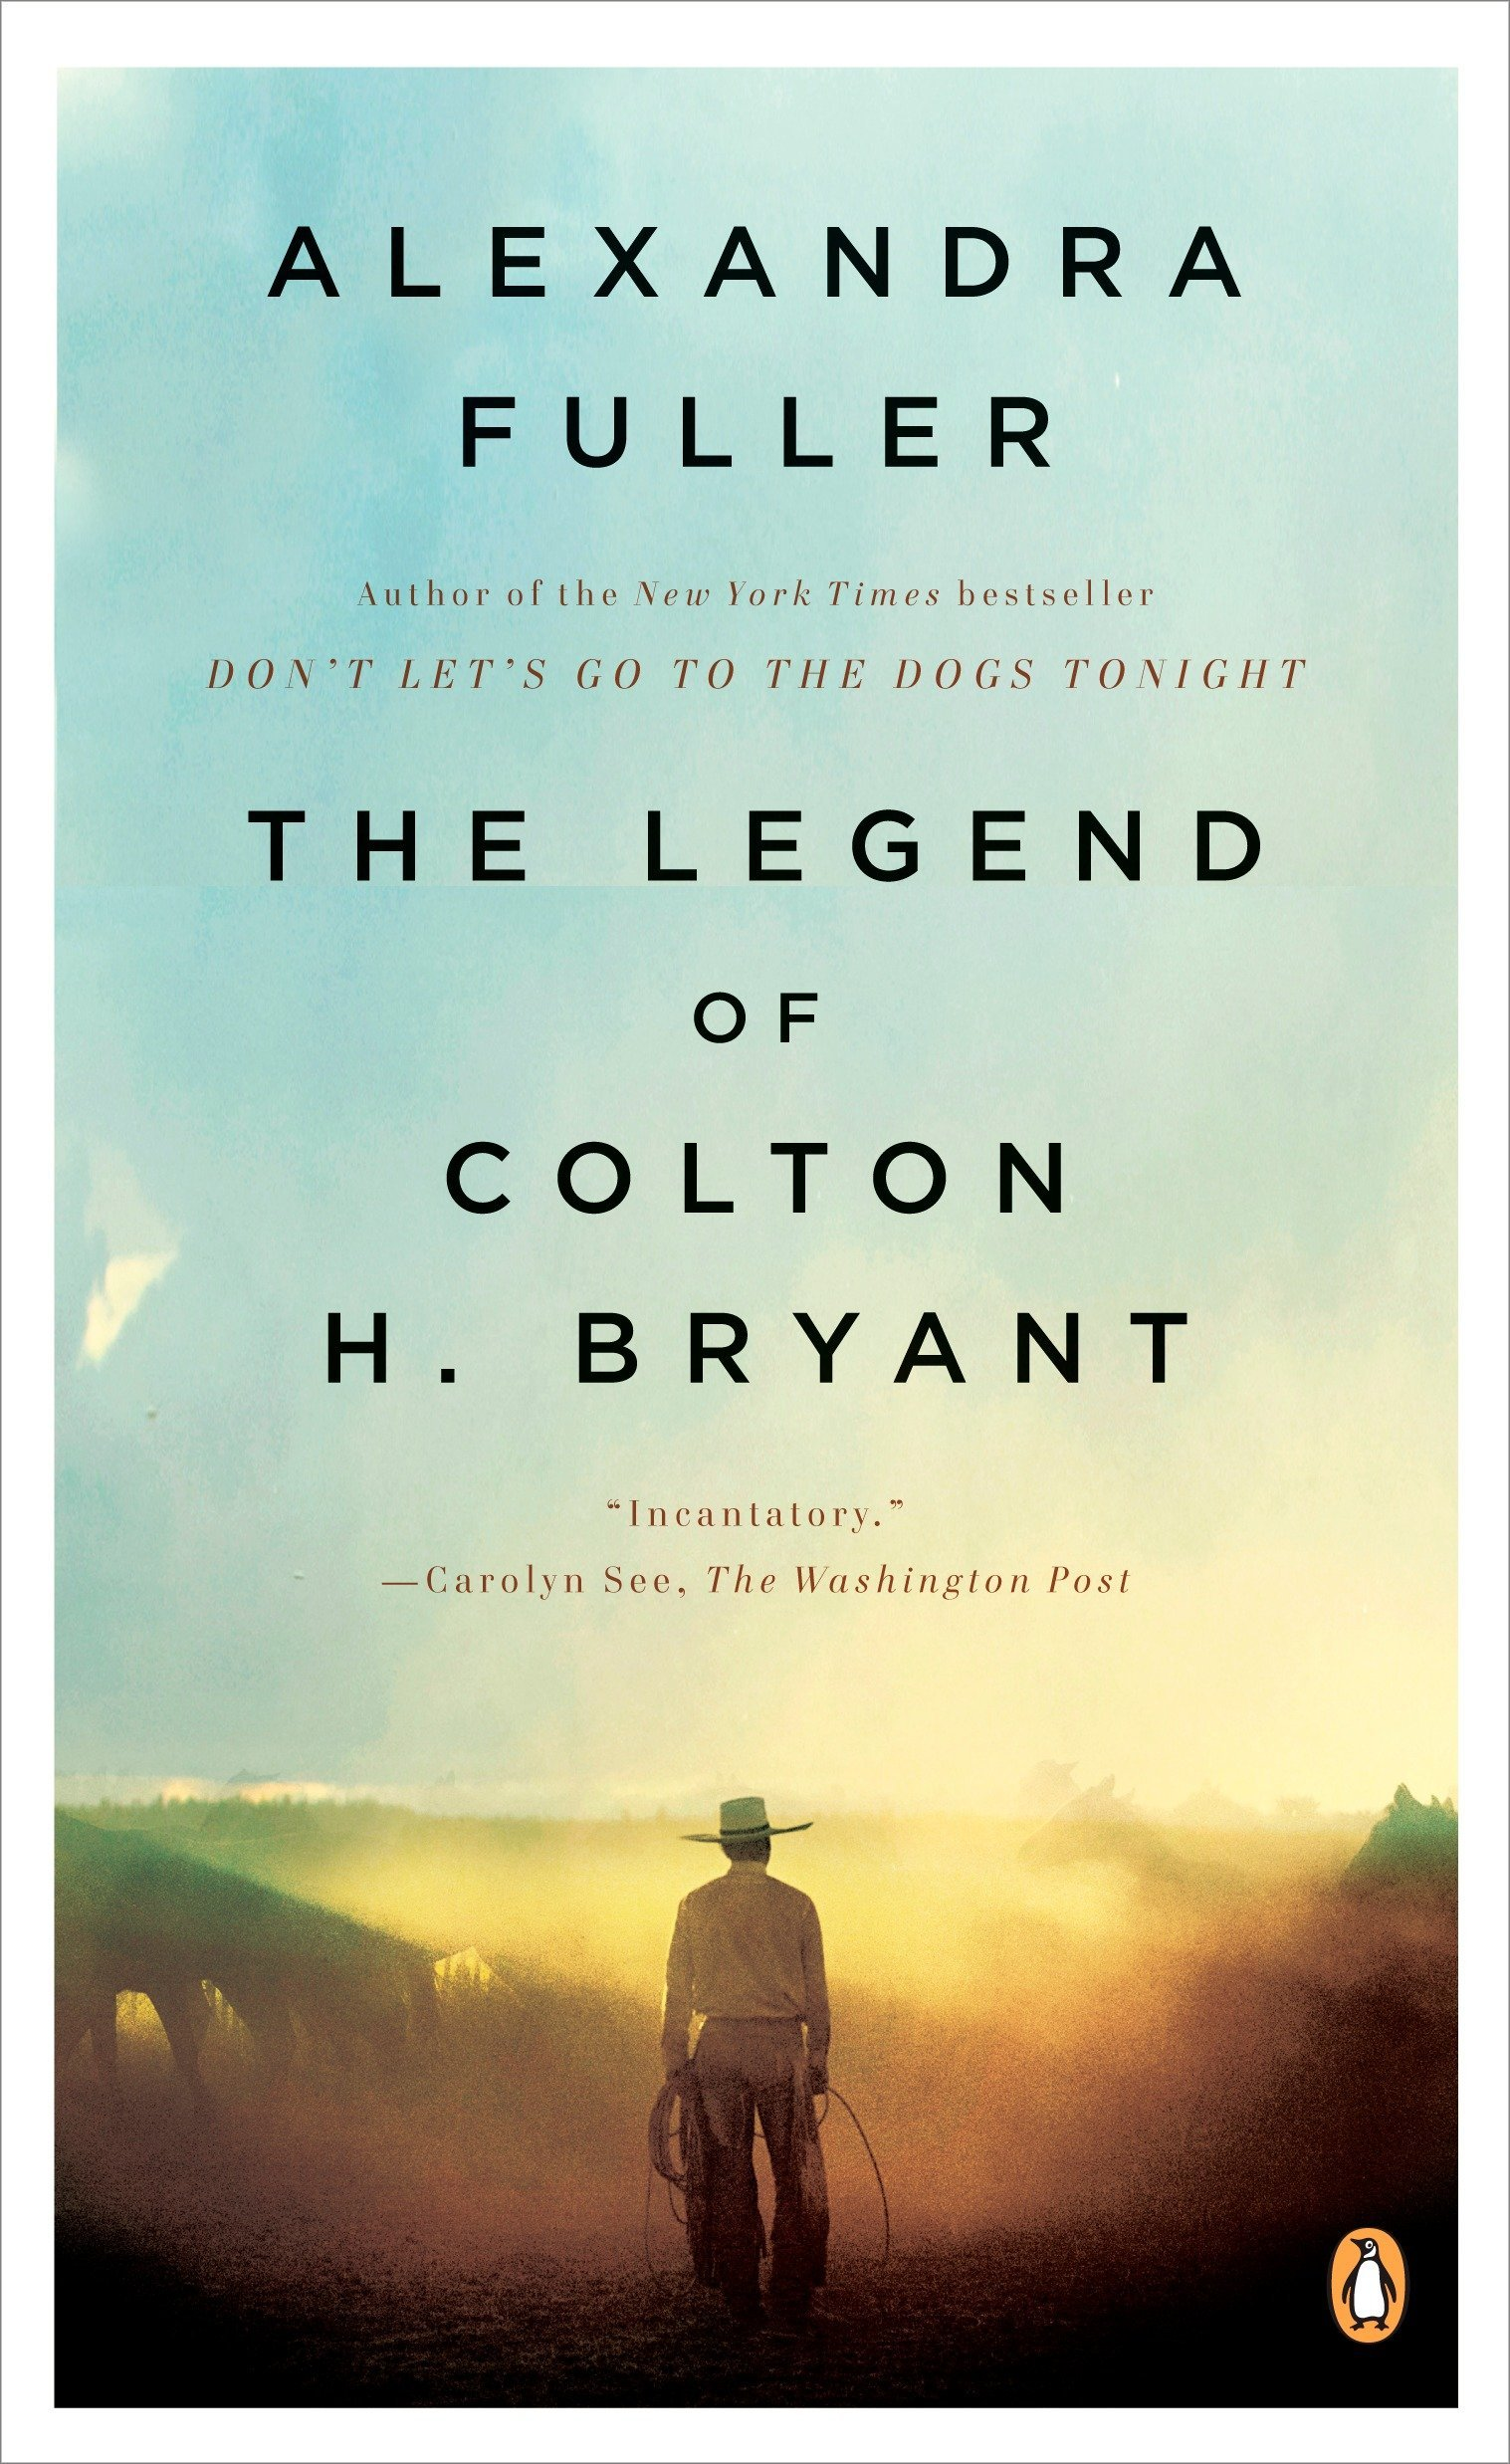 The Legend of Colton H. Bryant PDF